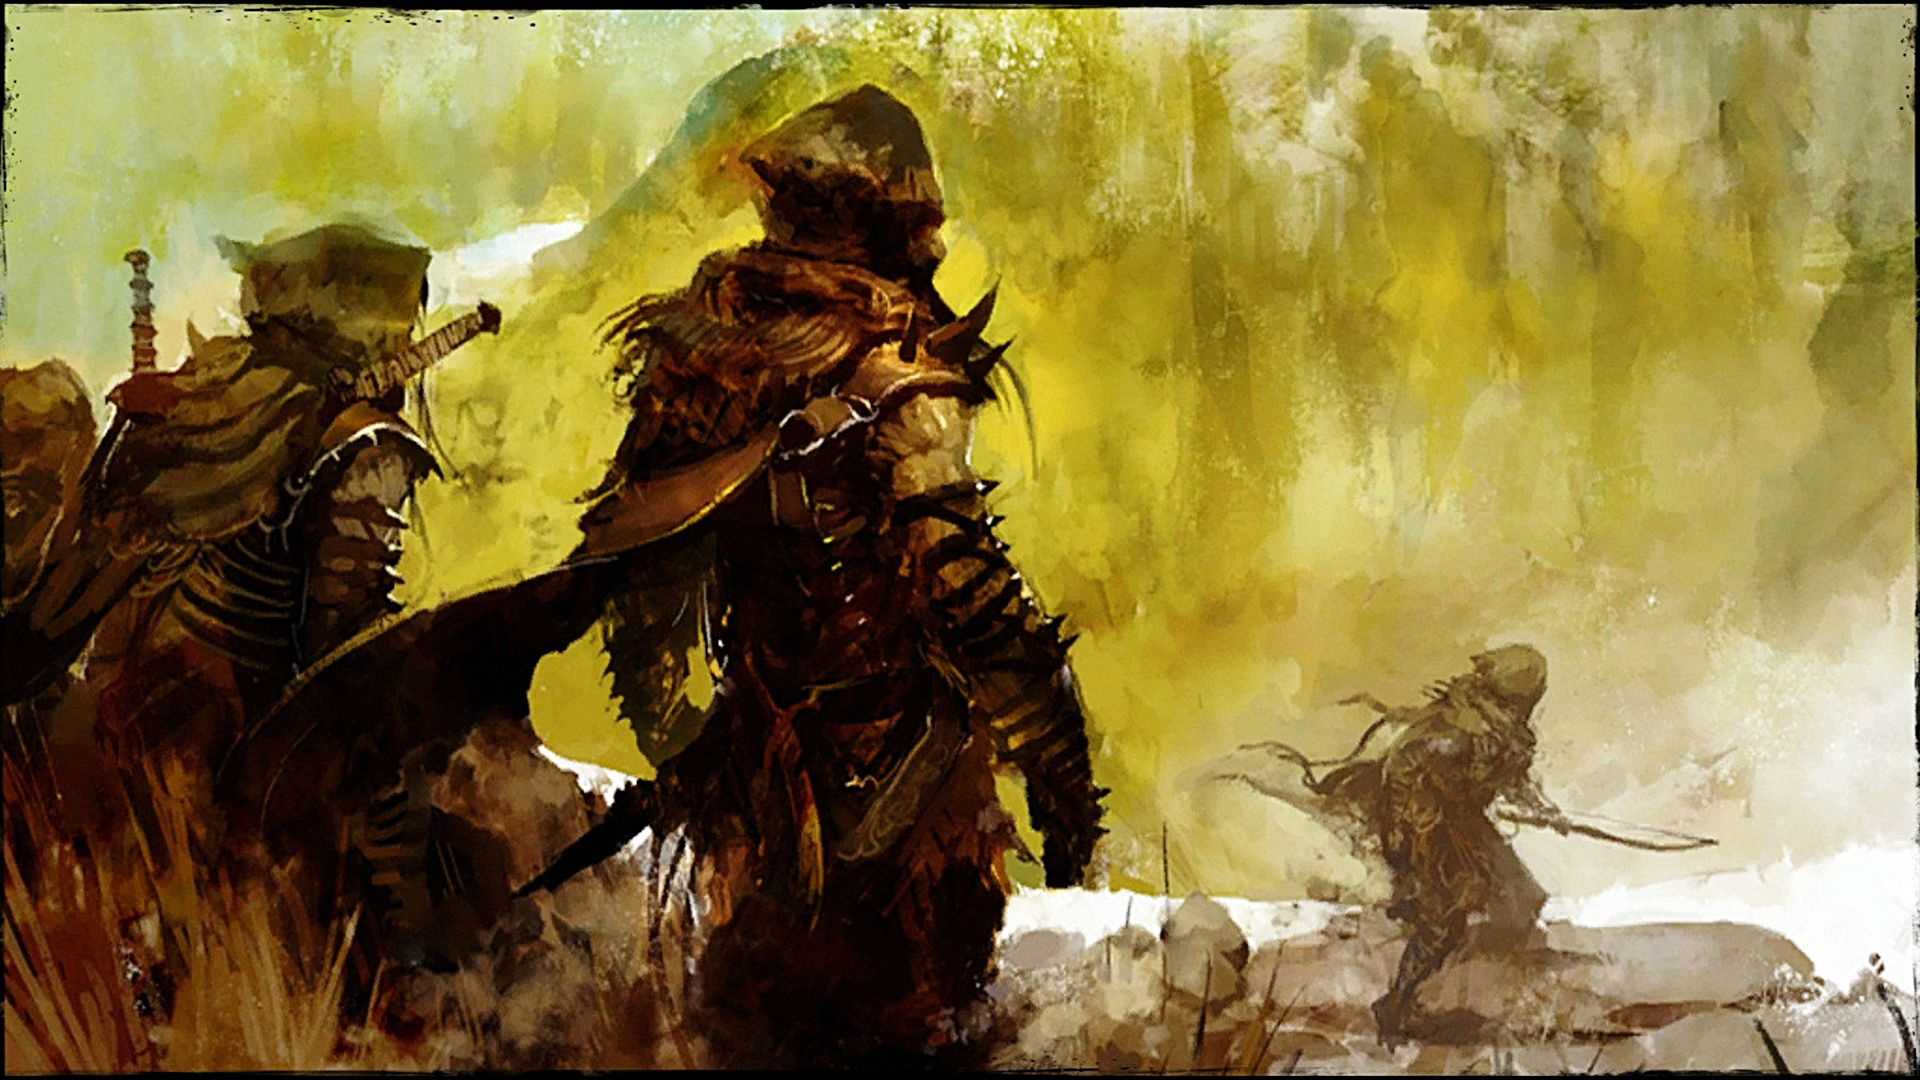 Guild Wars 2 Backgrounds, Pictures, Images